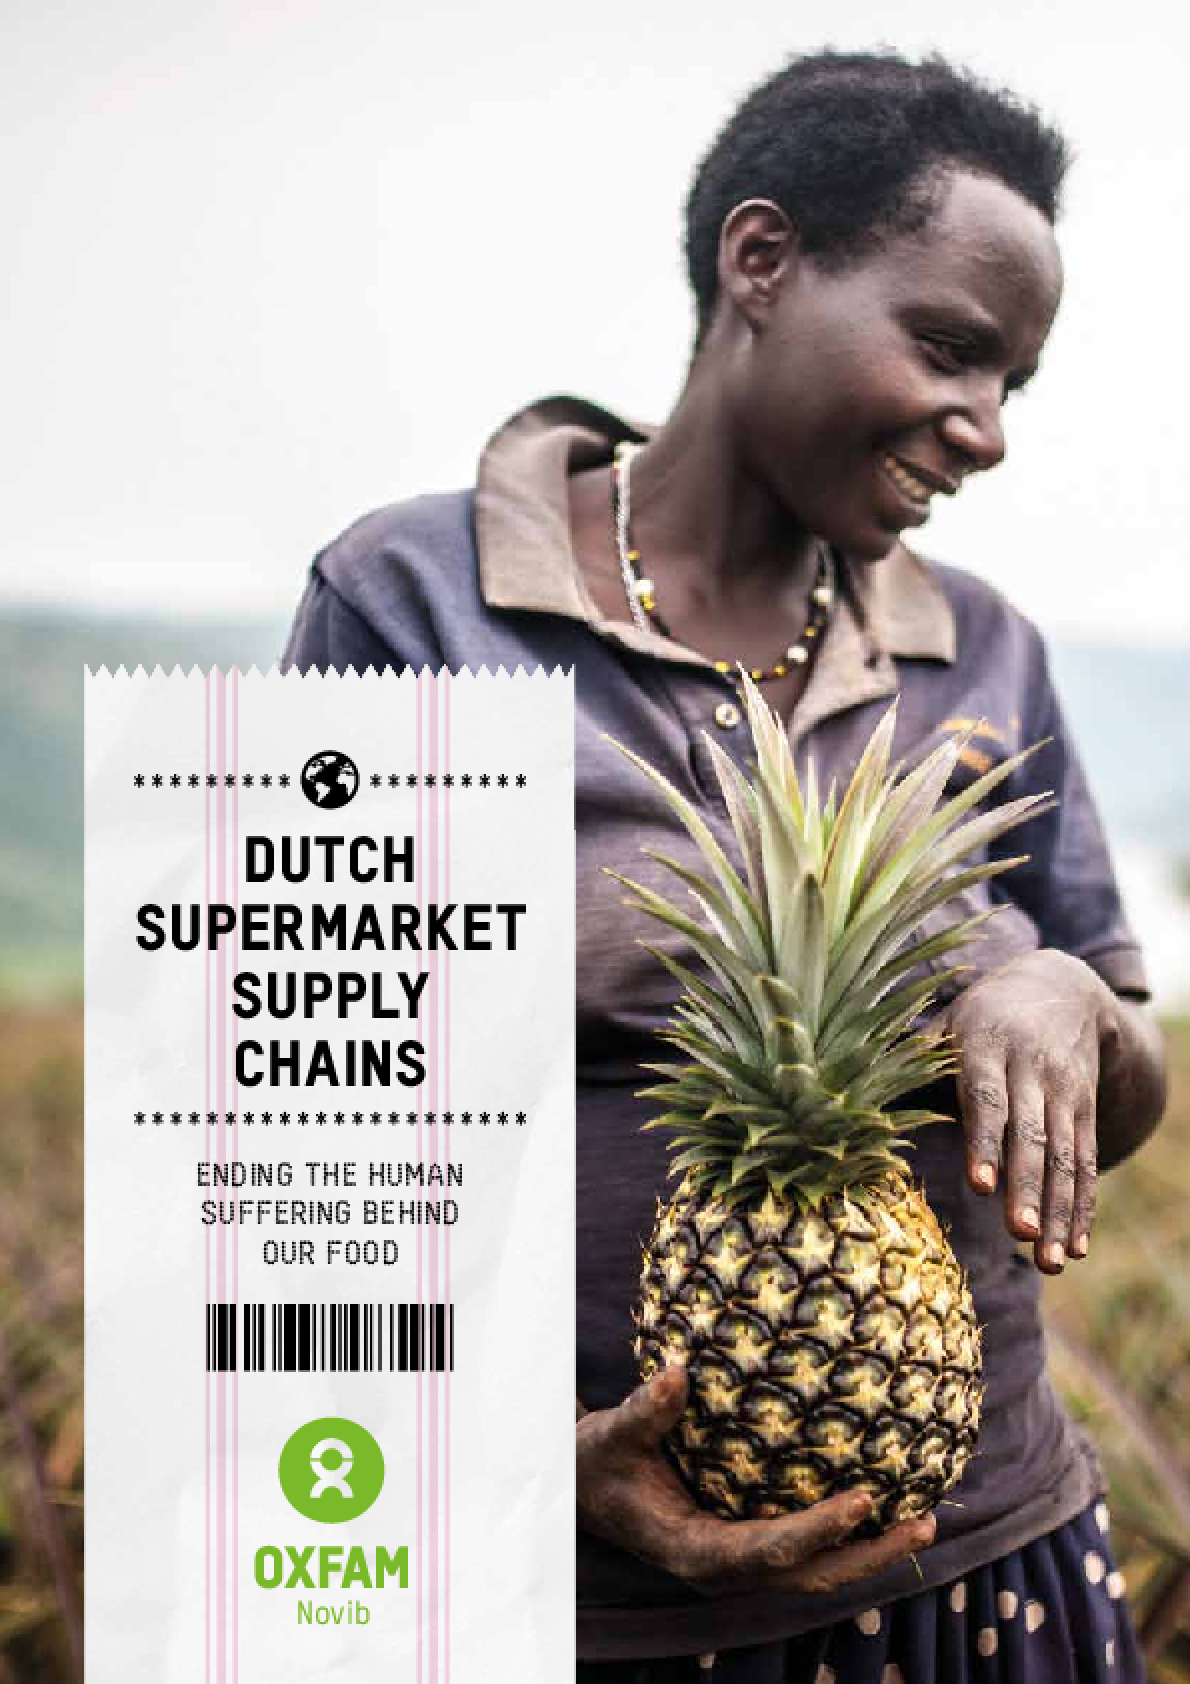 Dutch Supermarket Supply Chains: Ending the human suffering behind our food